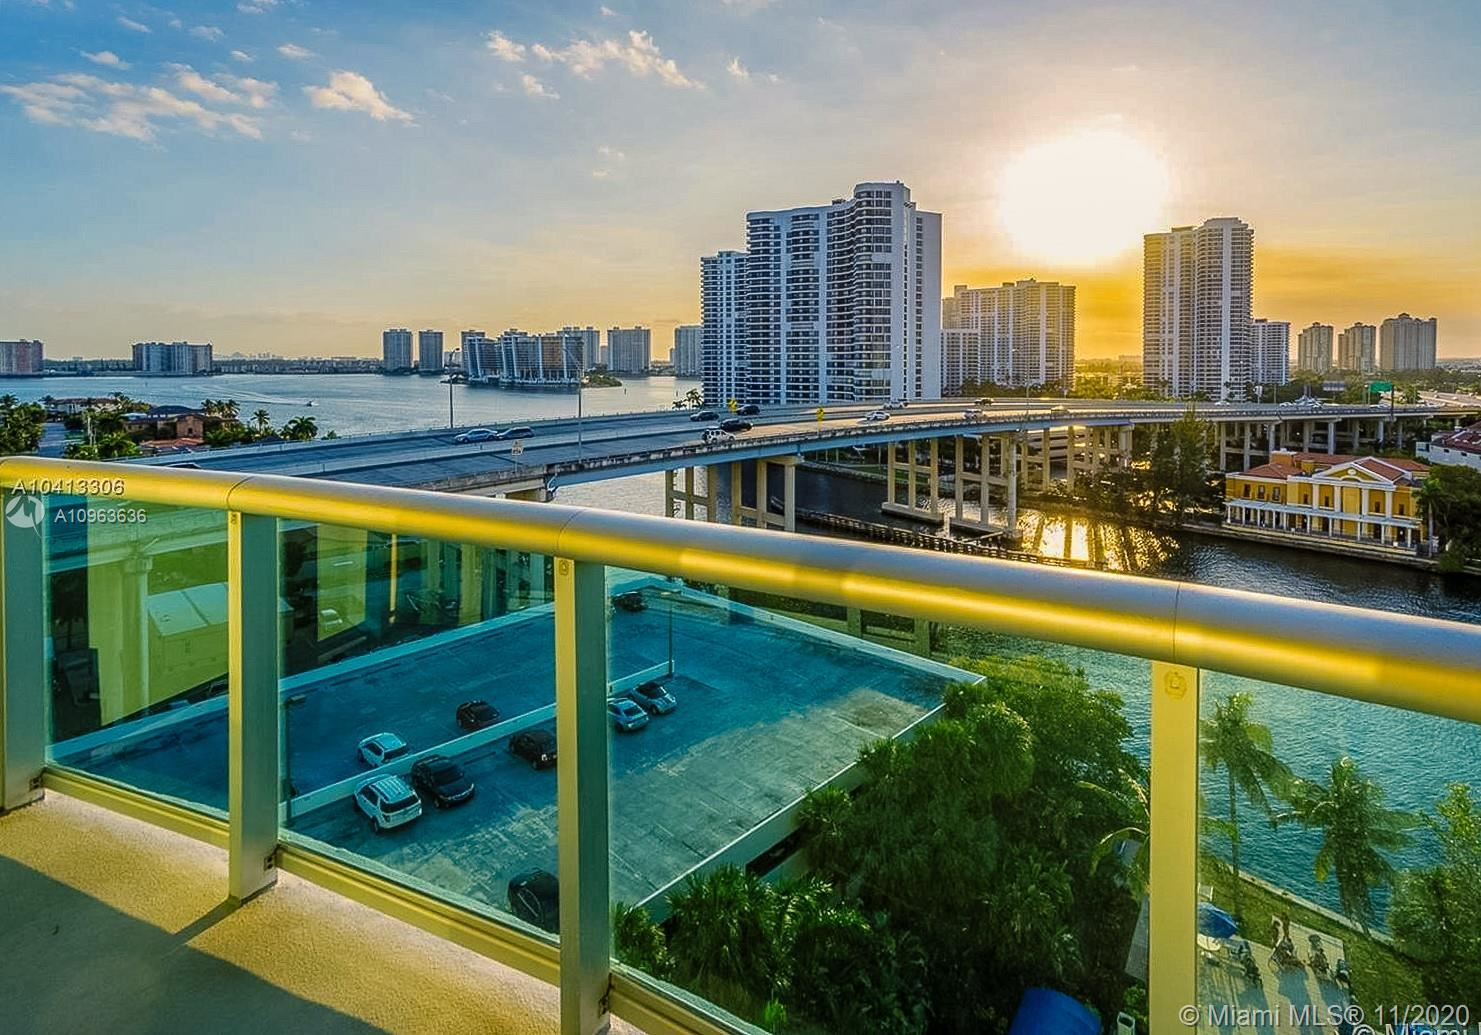 Photo of 19390 Collins Ave #1103, Sunny Isles Beach, FL 33160 (MLS # A10963636)